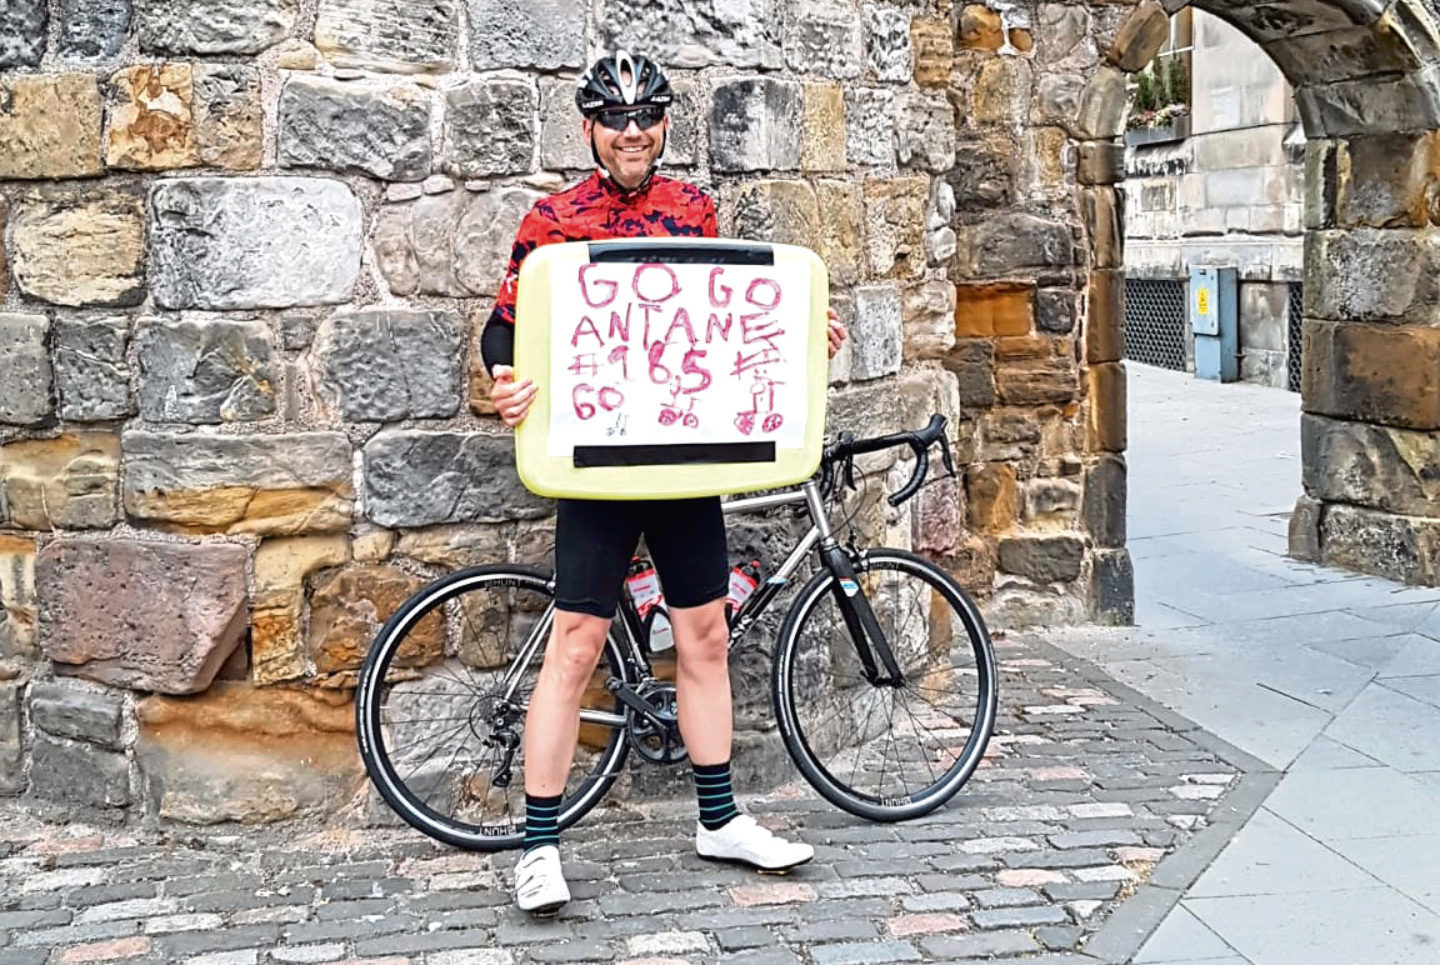 Anthony Revell who cycled 185 miles in one day.